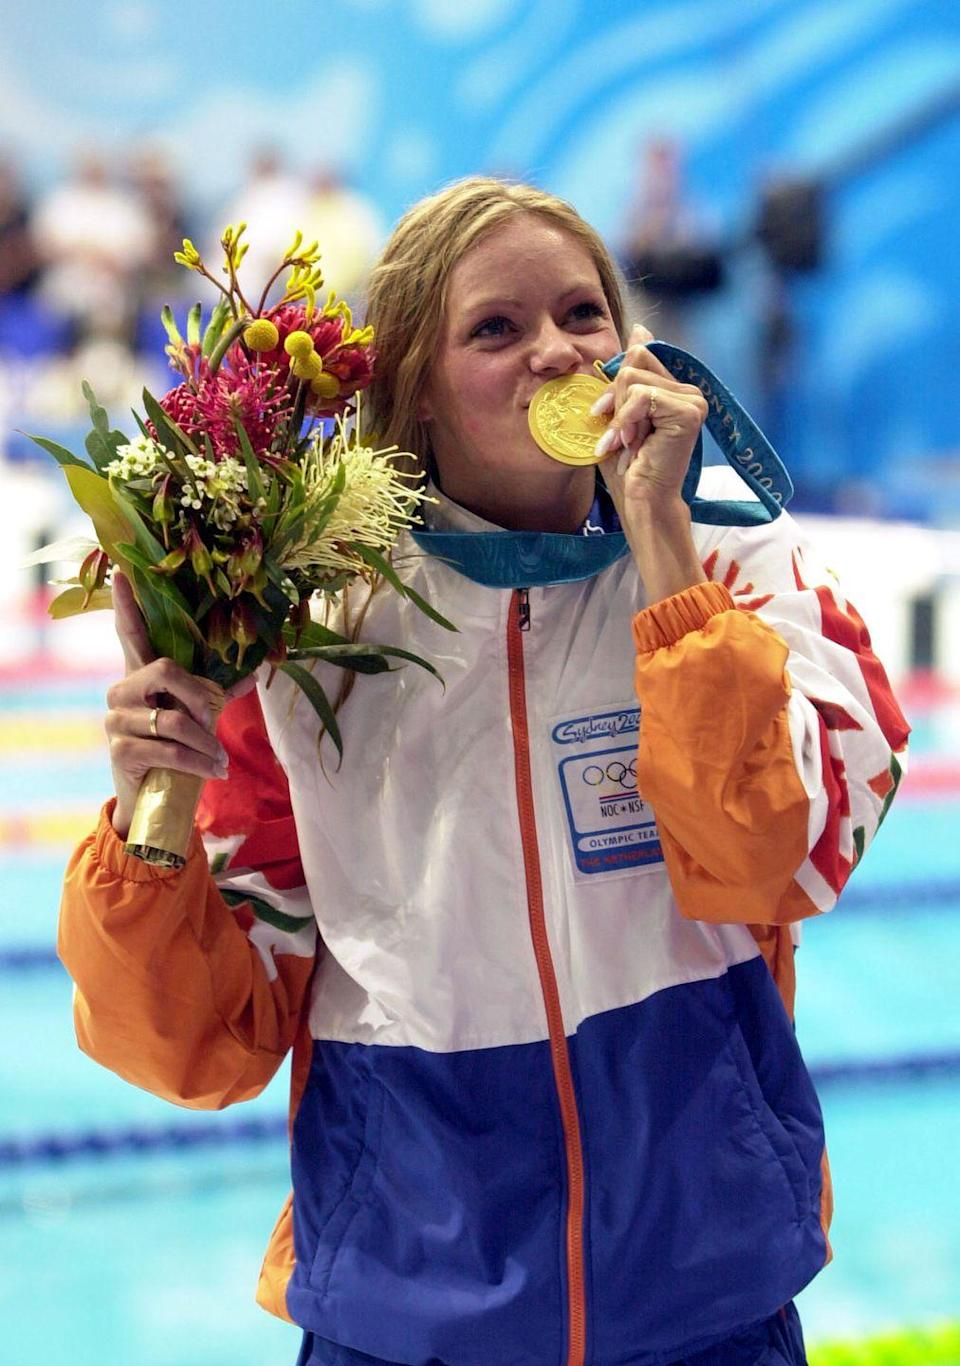 """<p>Inge de Bruijn made quite the splash in Sydney, Australia. The swimmer from the Netherlands took home gold medals in the 50m and 100m freestyles and the 100m butterfly, while <a href=""""https://ishof.org/inge-de-bruijn.html"""" rel=""""nofollow noopener"""" target=""""_blank"""" data-ylk=""""slk:setting world records"""" class=""""link rapid-noclick-resp"""">setting world records</a> in each of the three categories.</p>"""